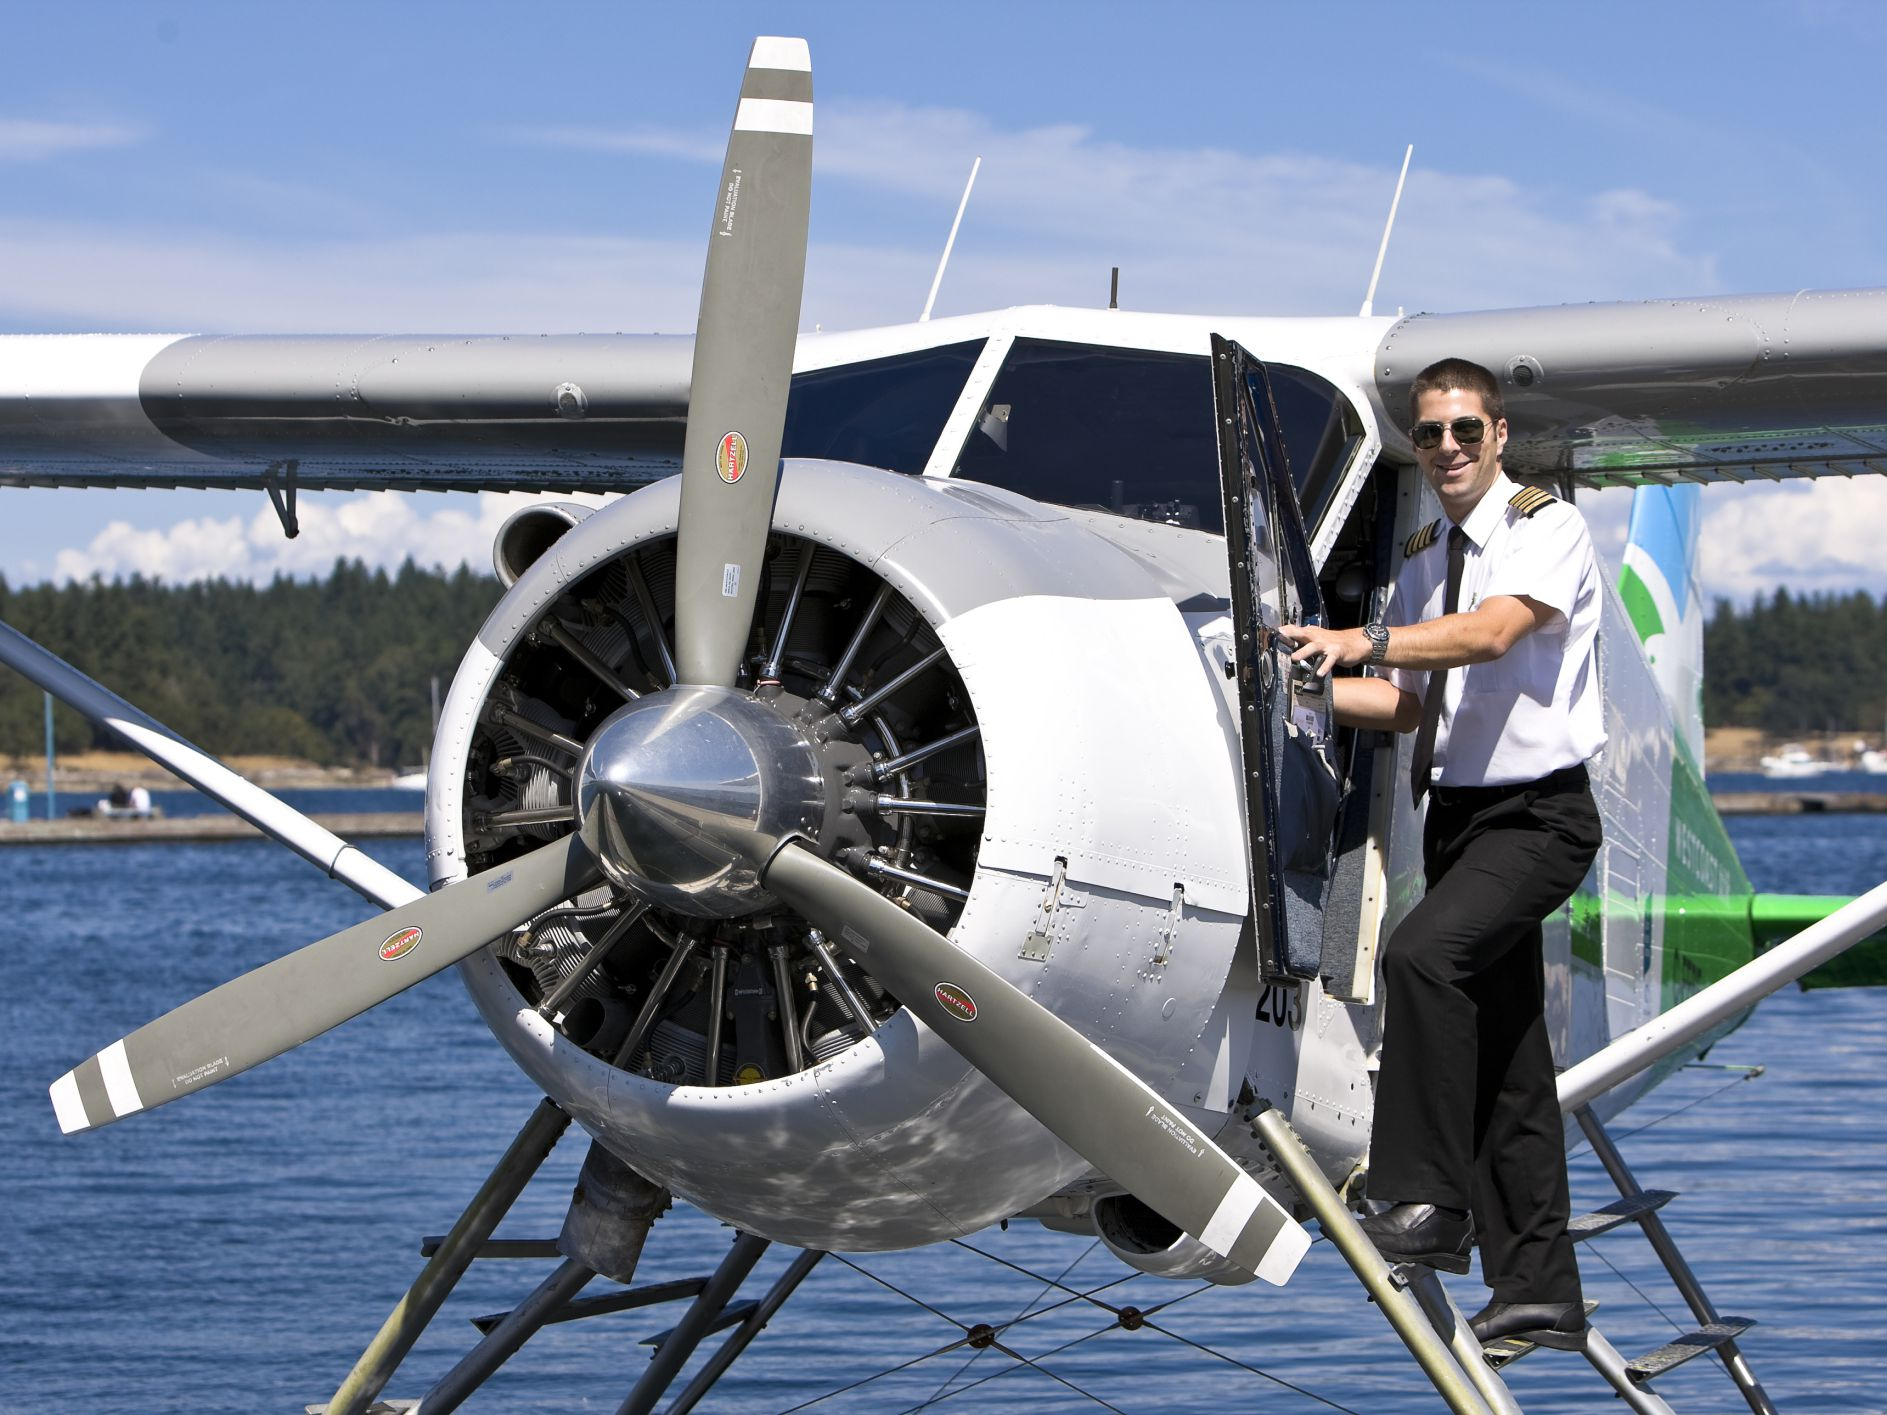 The Path From Private Pilot to Airline Pilot